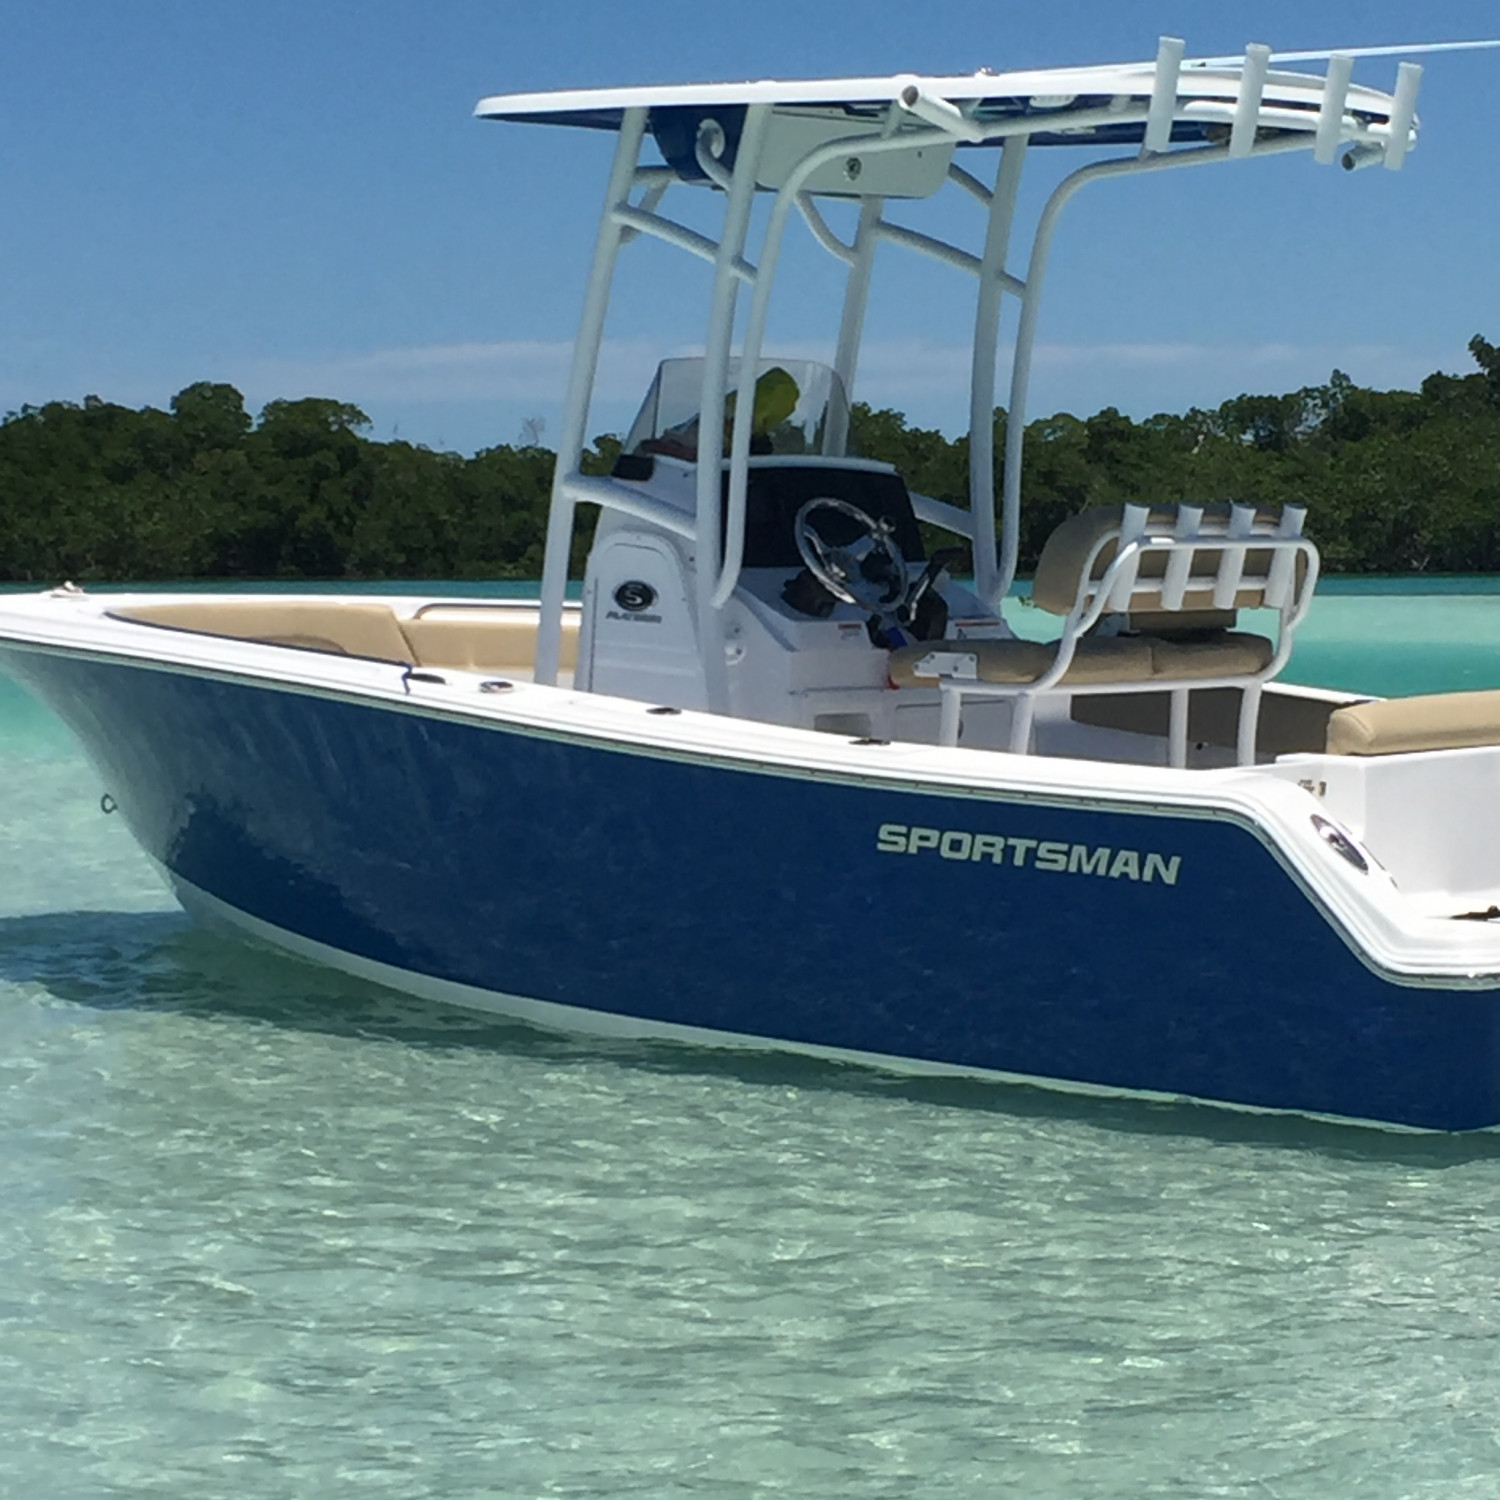 Title: Marvin key - On board their Sportsman Open 212 Center Console - Location: Marvin key in key west florida. Participating in the Photo Contest #SportsmanNovember2017